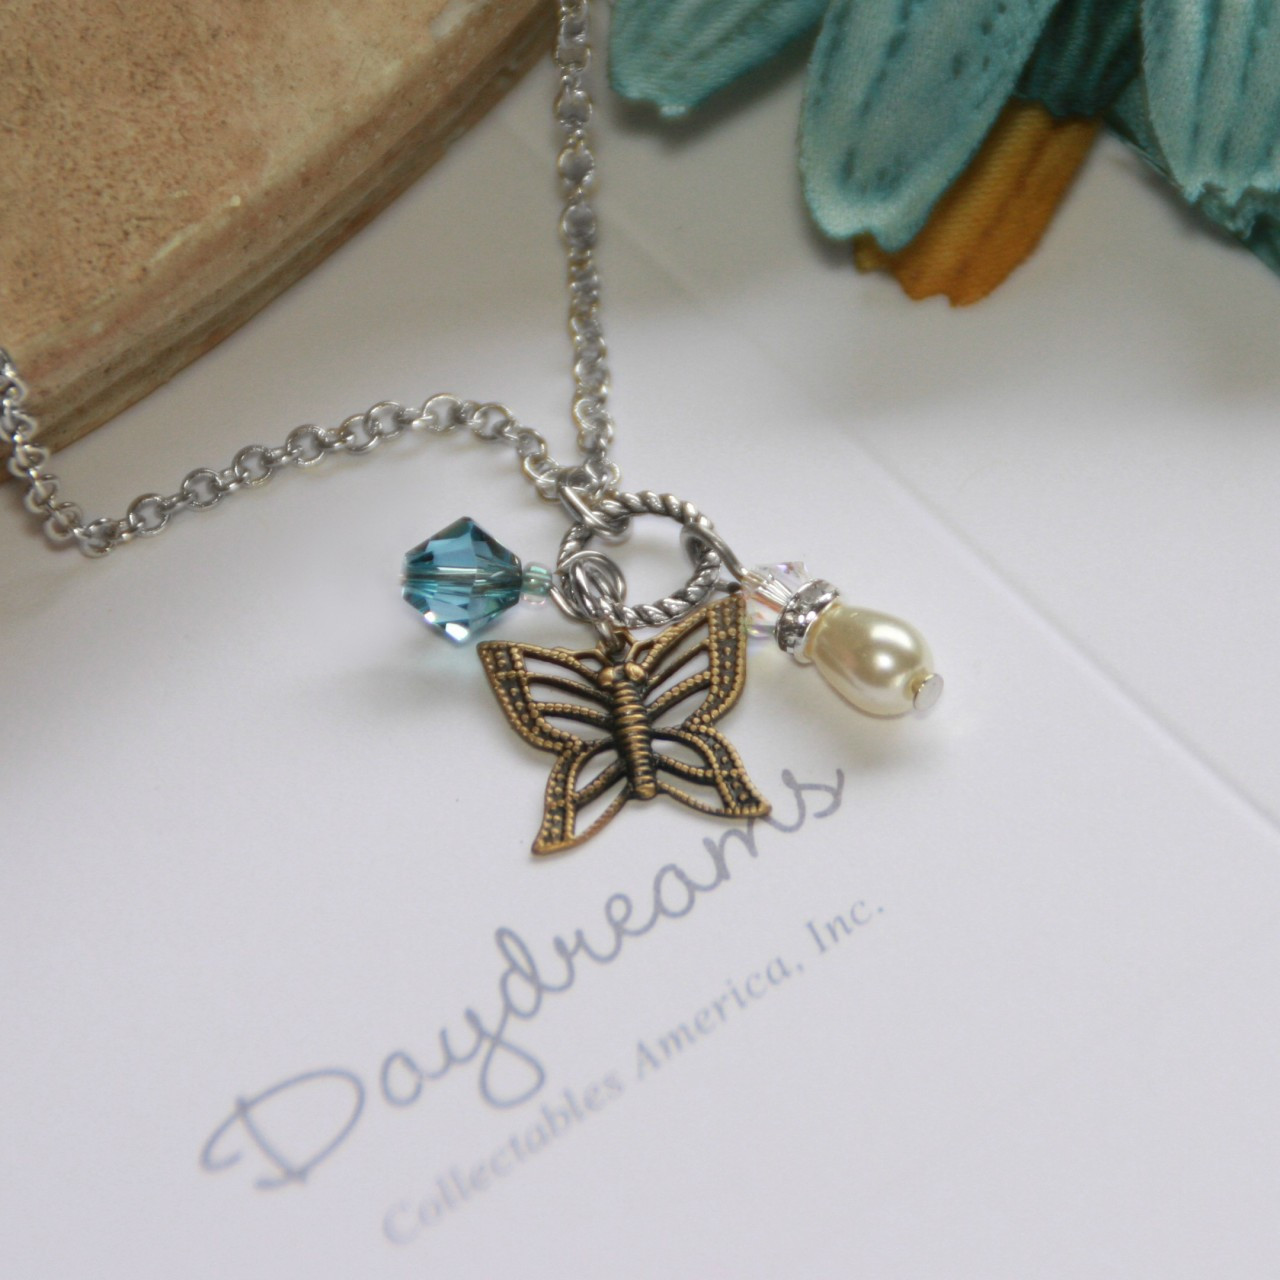 DD-2  Butterfly Charm Necklace from Daydreams Collection